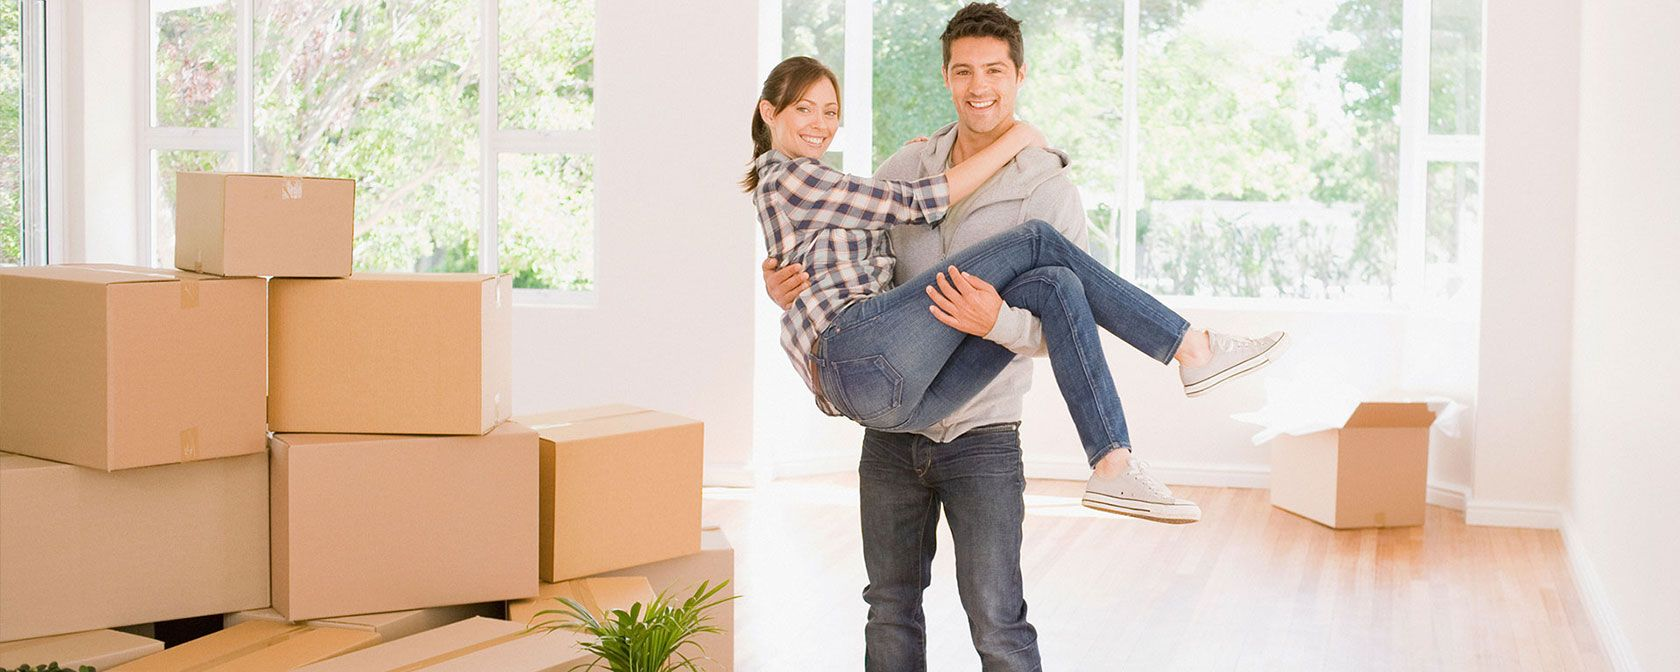 Trusted Domestic Packers and Movers in India from Mumbai